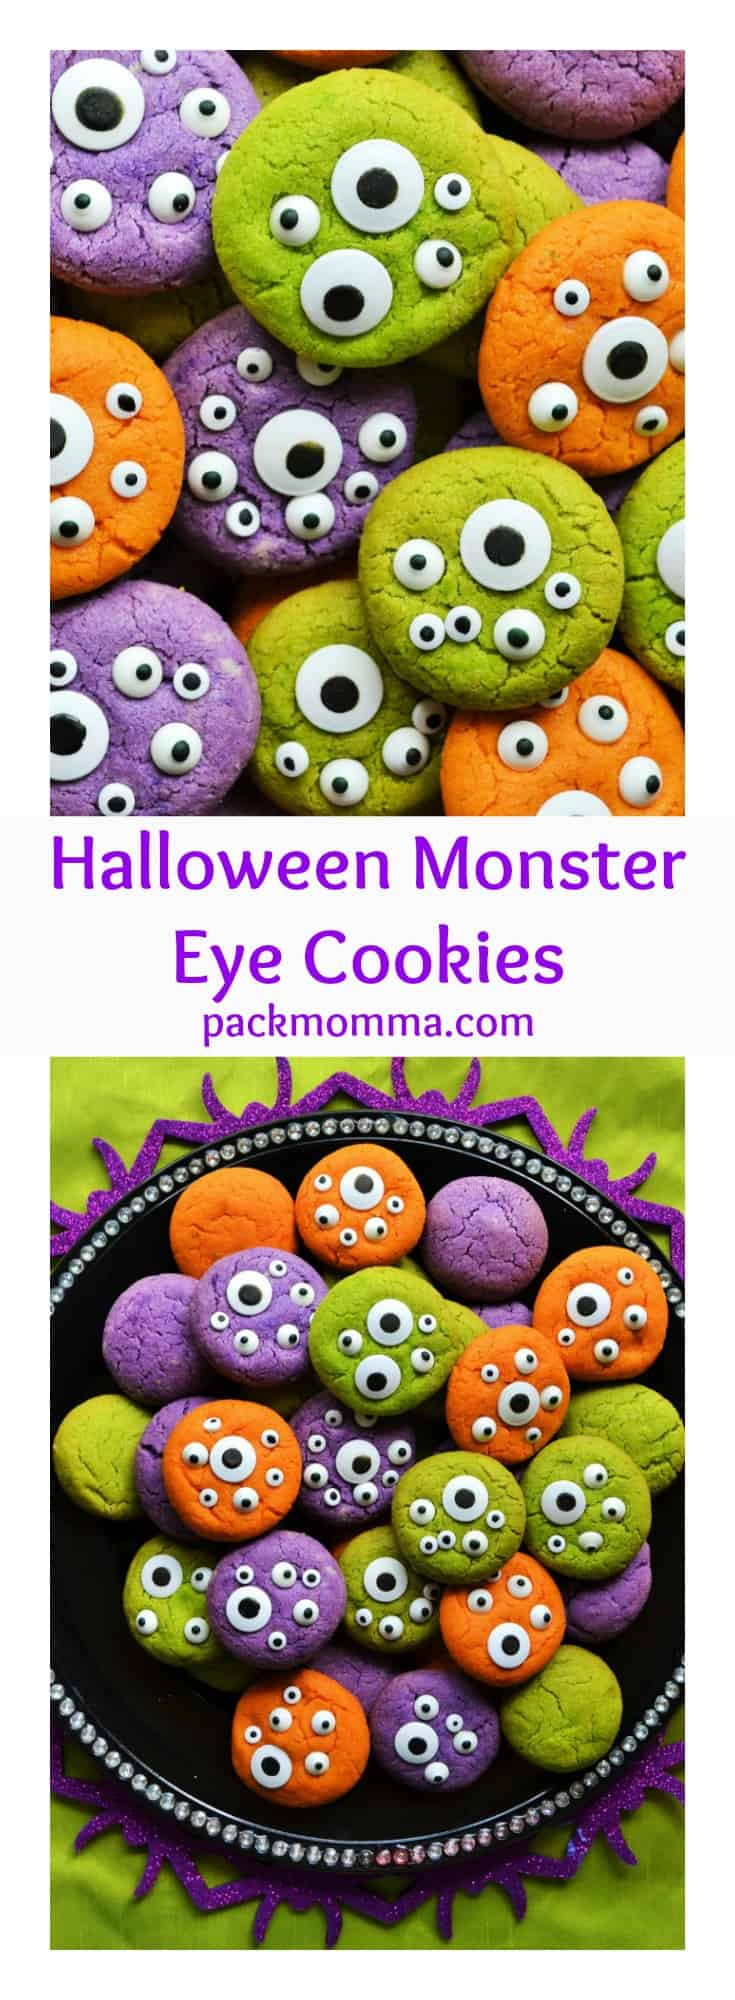 Halloween Monster Eye Cookies   Halloween Monster Eye Cookies are easy, festive and super fun to make! Soft vanilla cookies perfectly scary with candy eyeballs.. perfect for Halloween!   A Wicked Whisk   www.awickedwhisk.com #halloween #halloweenfood #halloweencookies #monstercookies #monstereyecookies